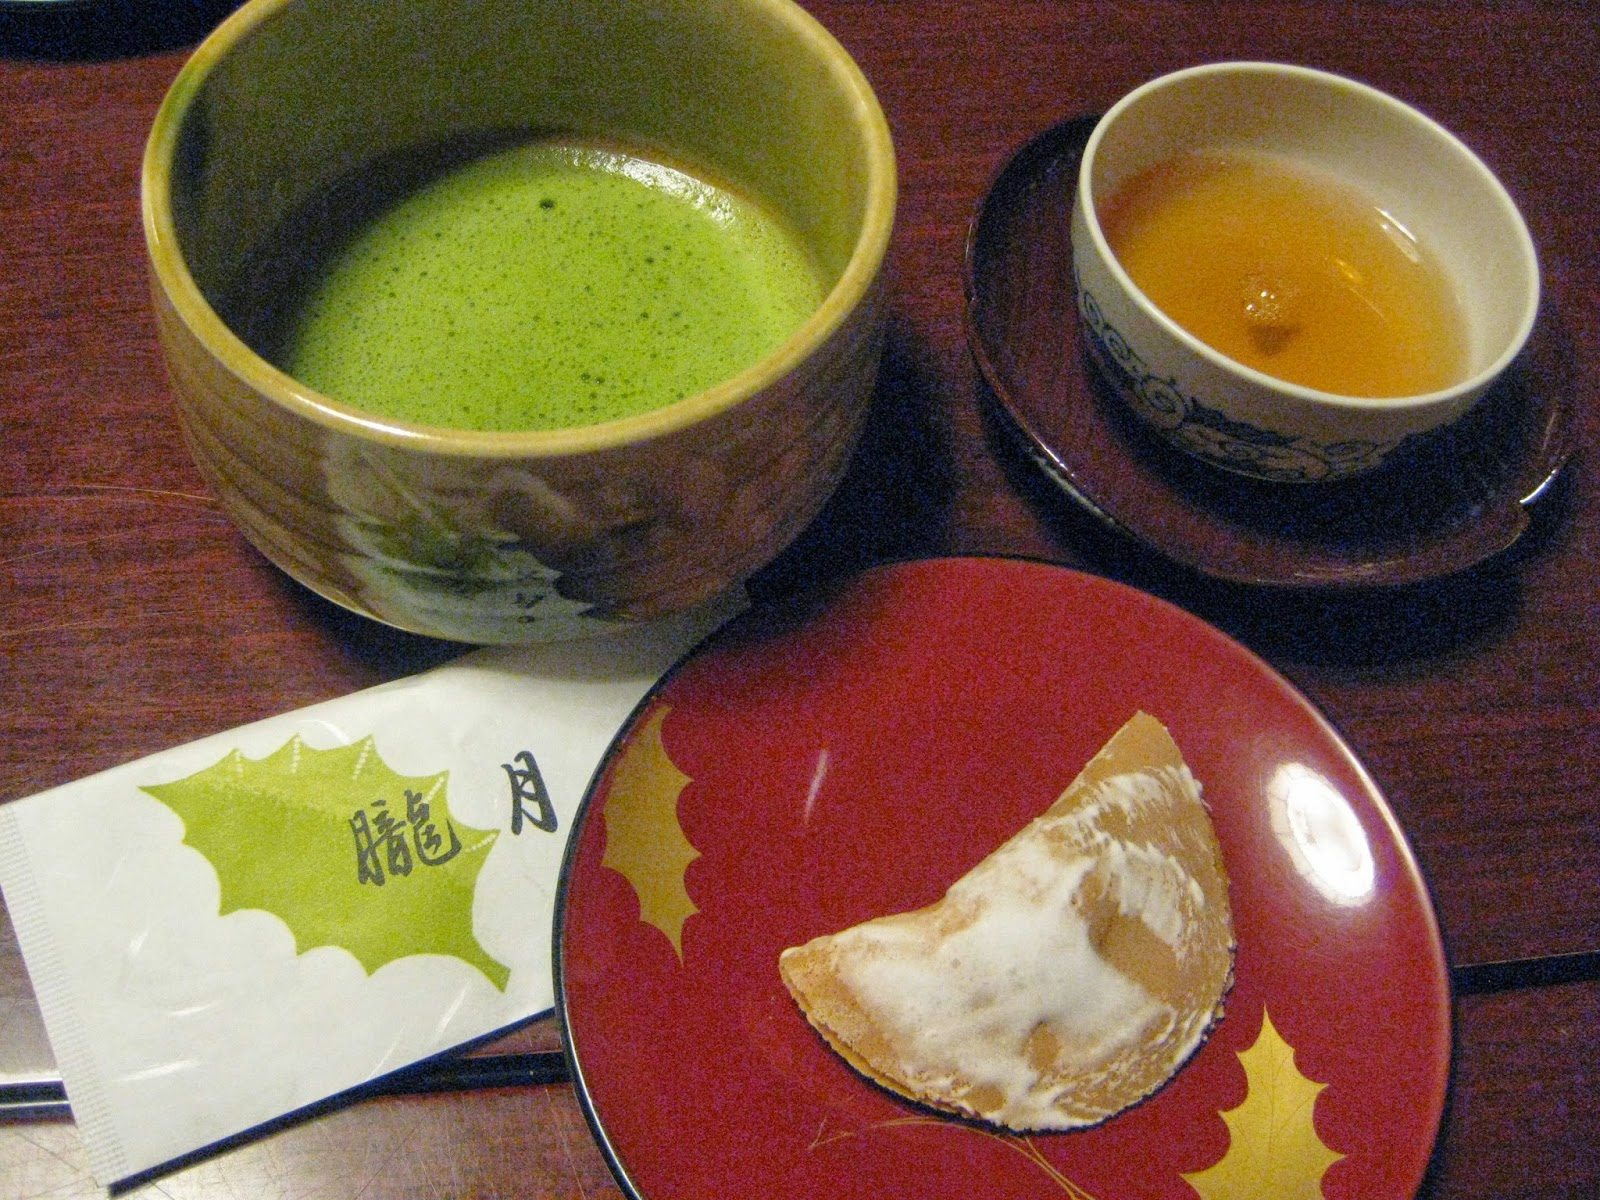 Kyoto - Matcha green tea, tea, and a small pastry made the perfect snack